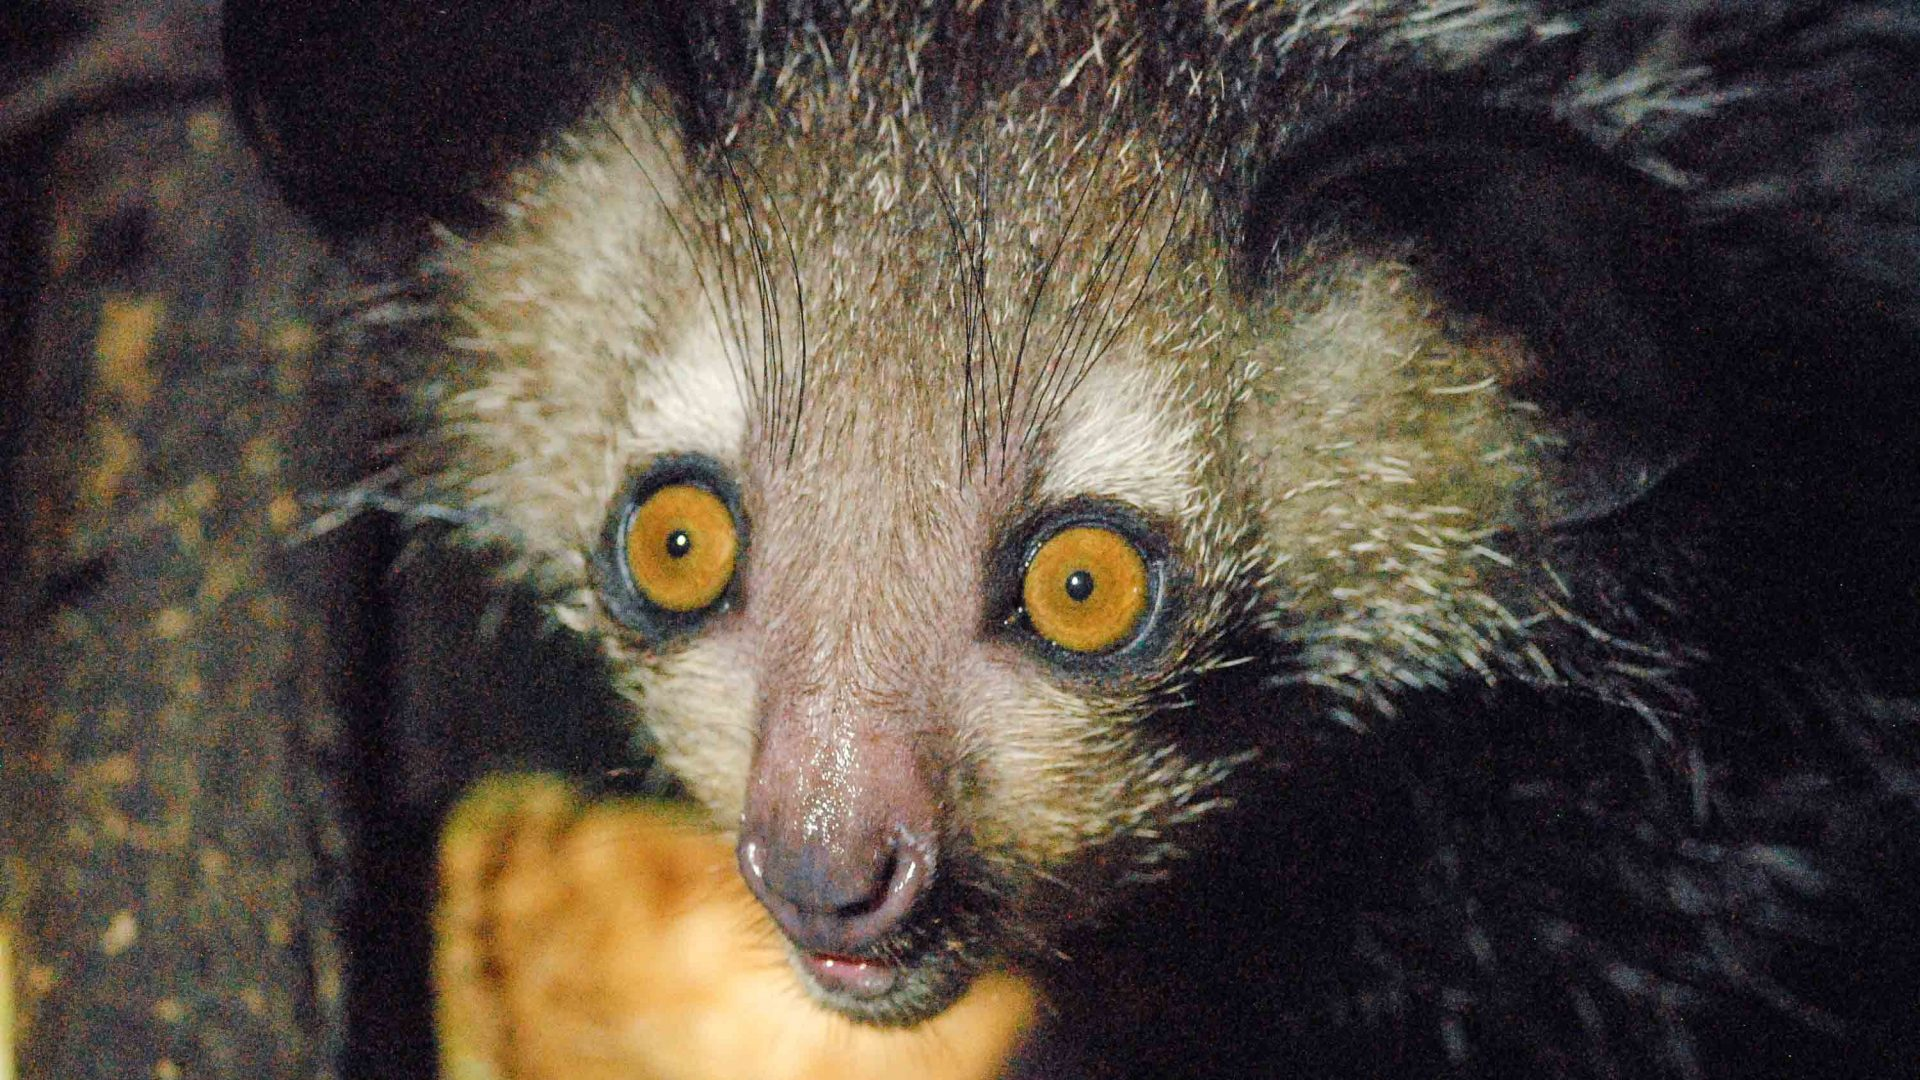 Creepy, cute and elusive: In search of Madagascar's strangest creature